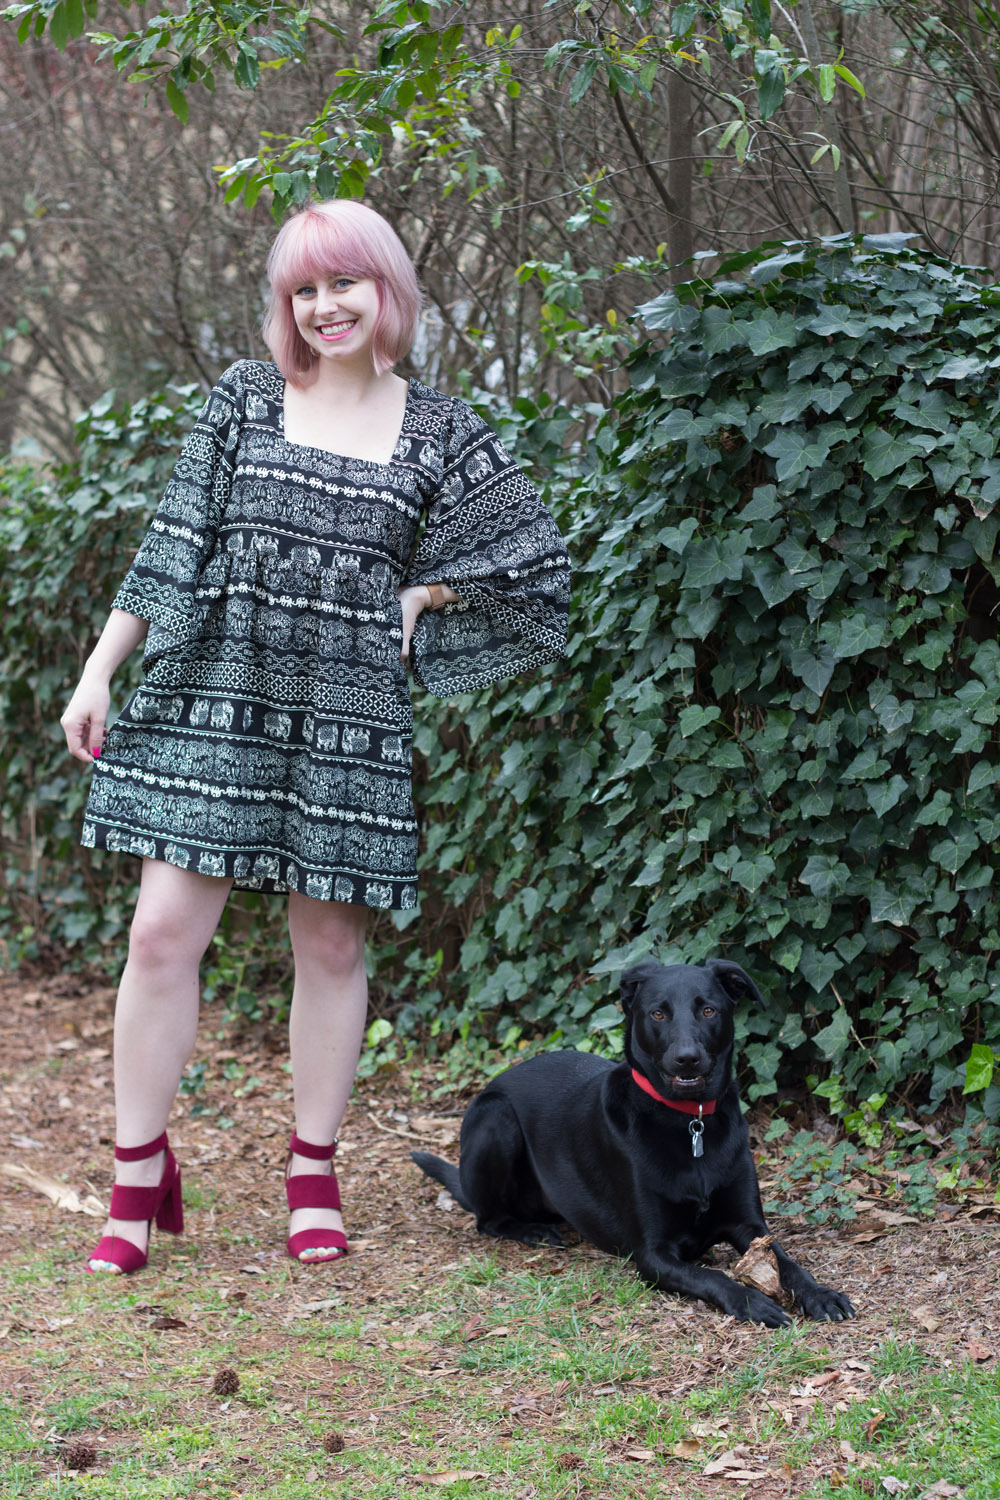 Pink Hair, Boohoo Elephant Print Dress and Colorful Heels with a Black Lab Mix